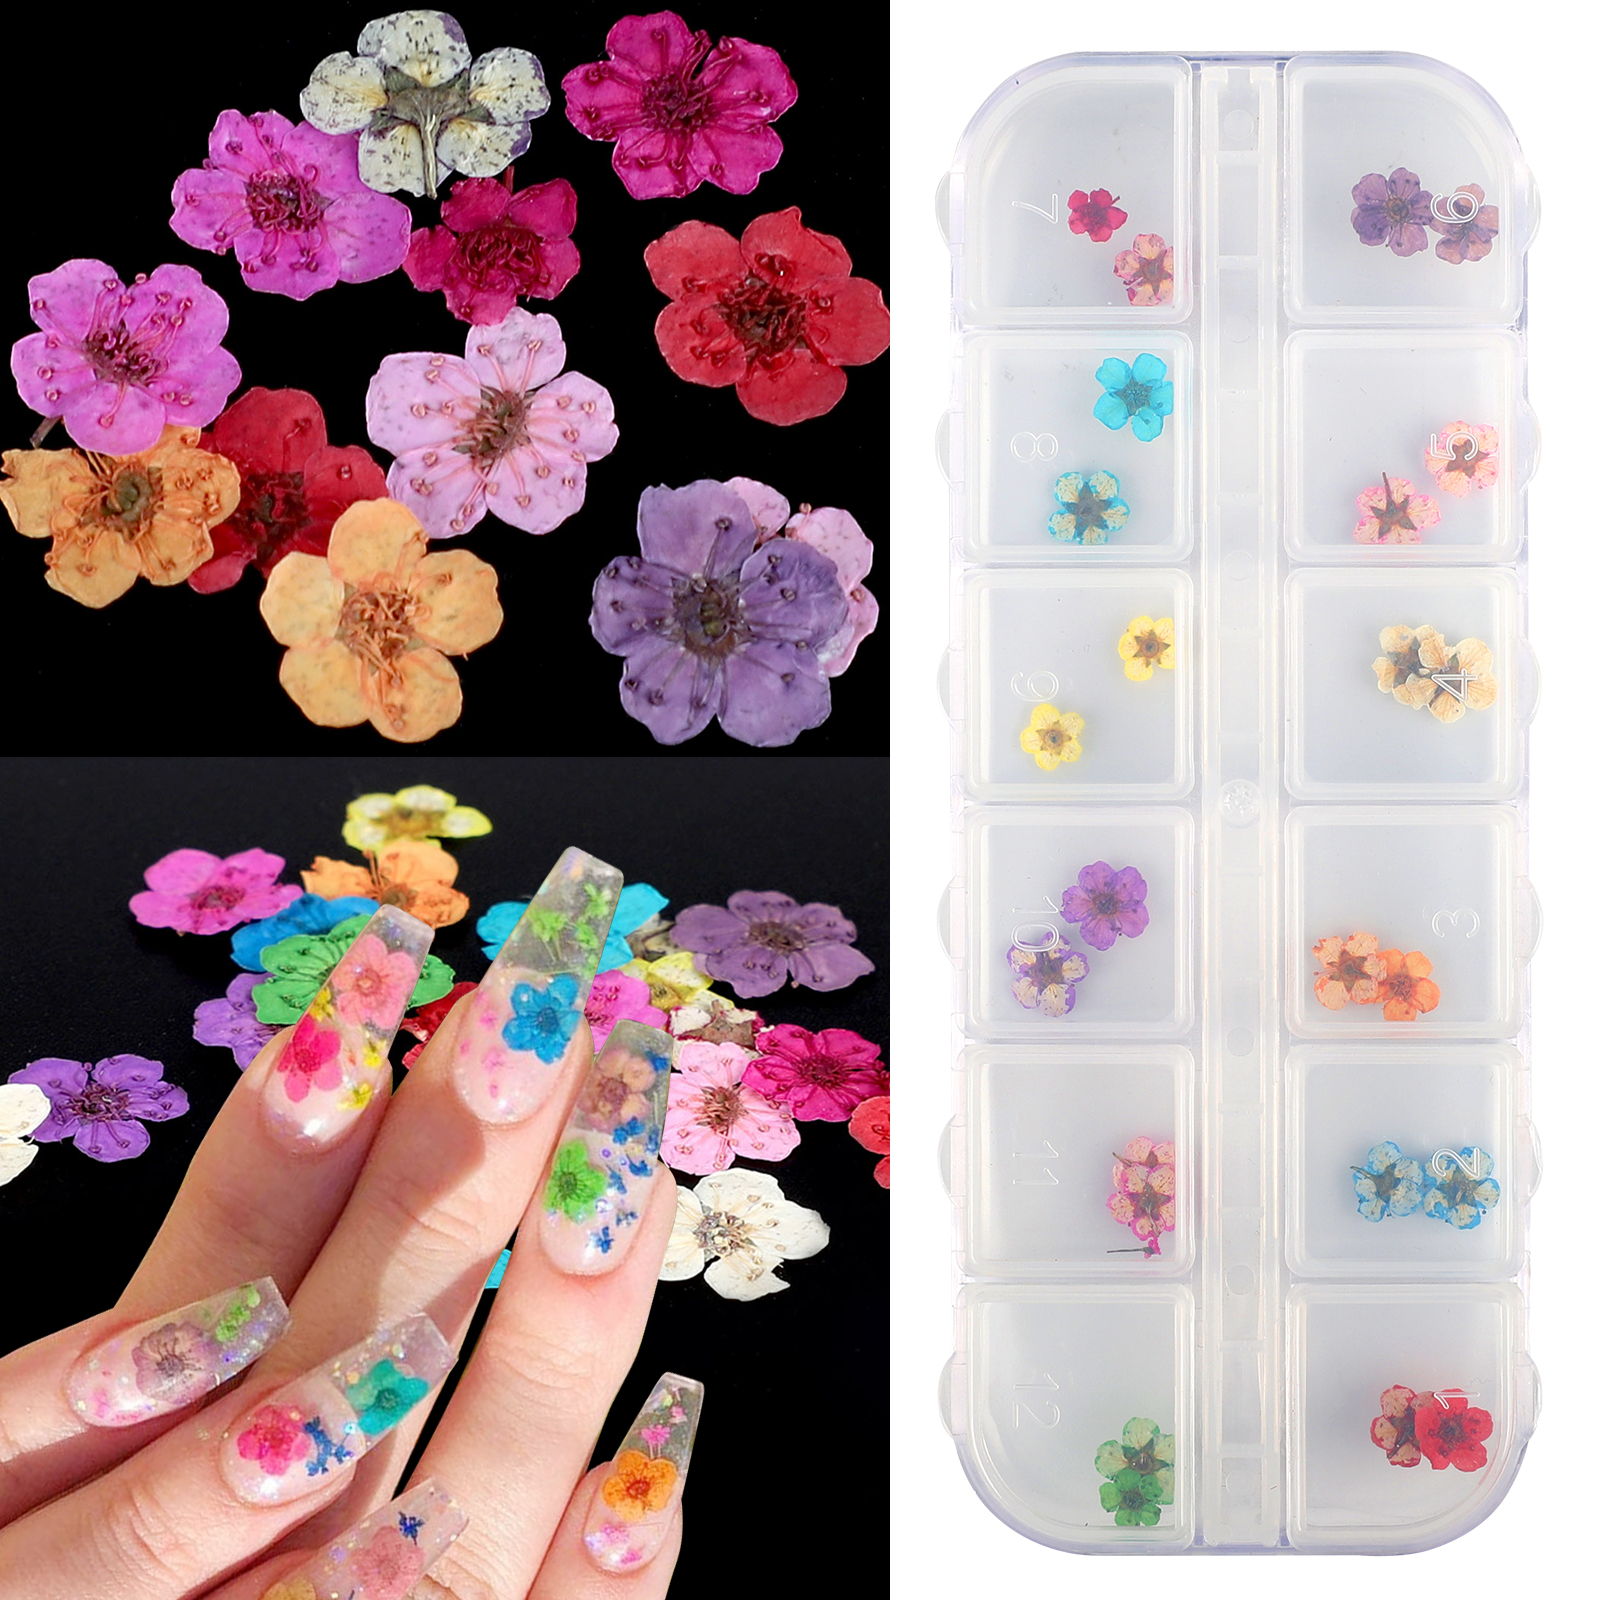 12 Colors Real Dried Flowers 3D Nail Art Decors Design DIY T